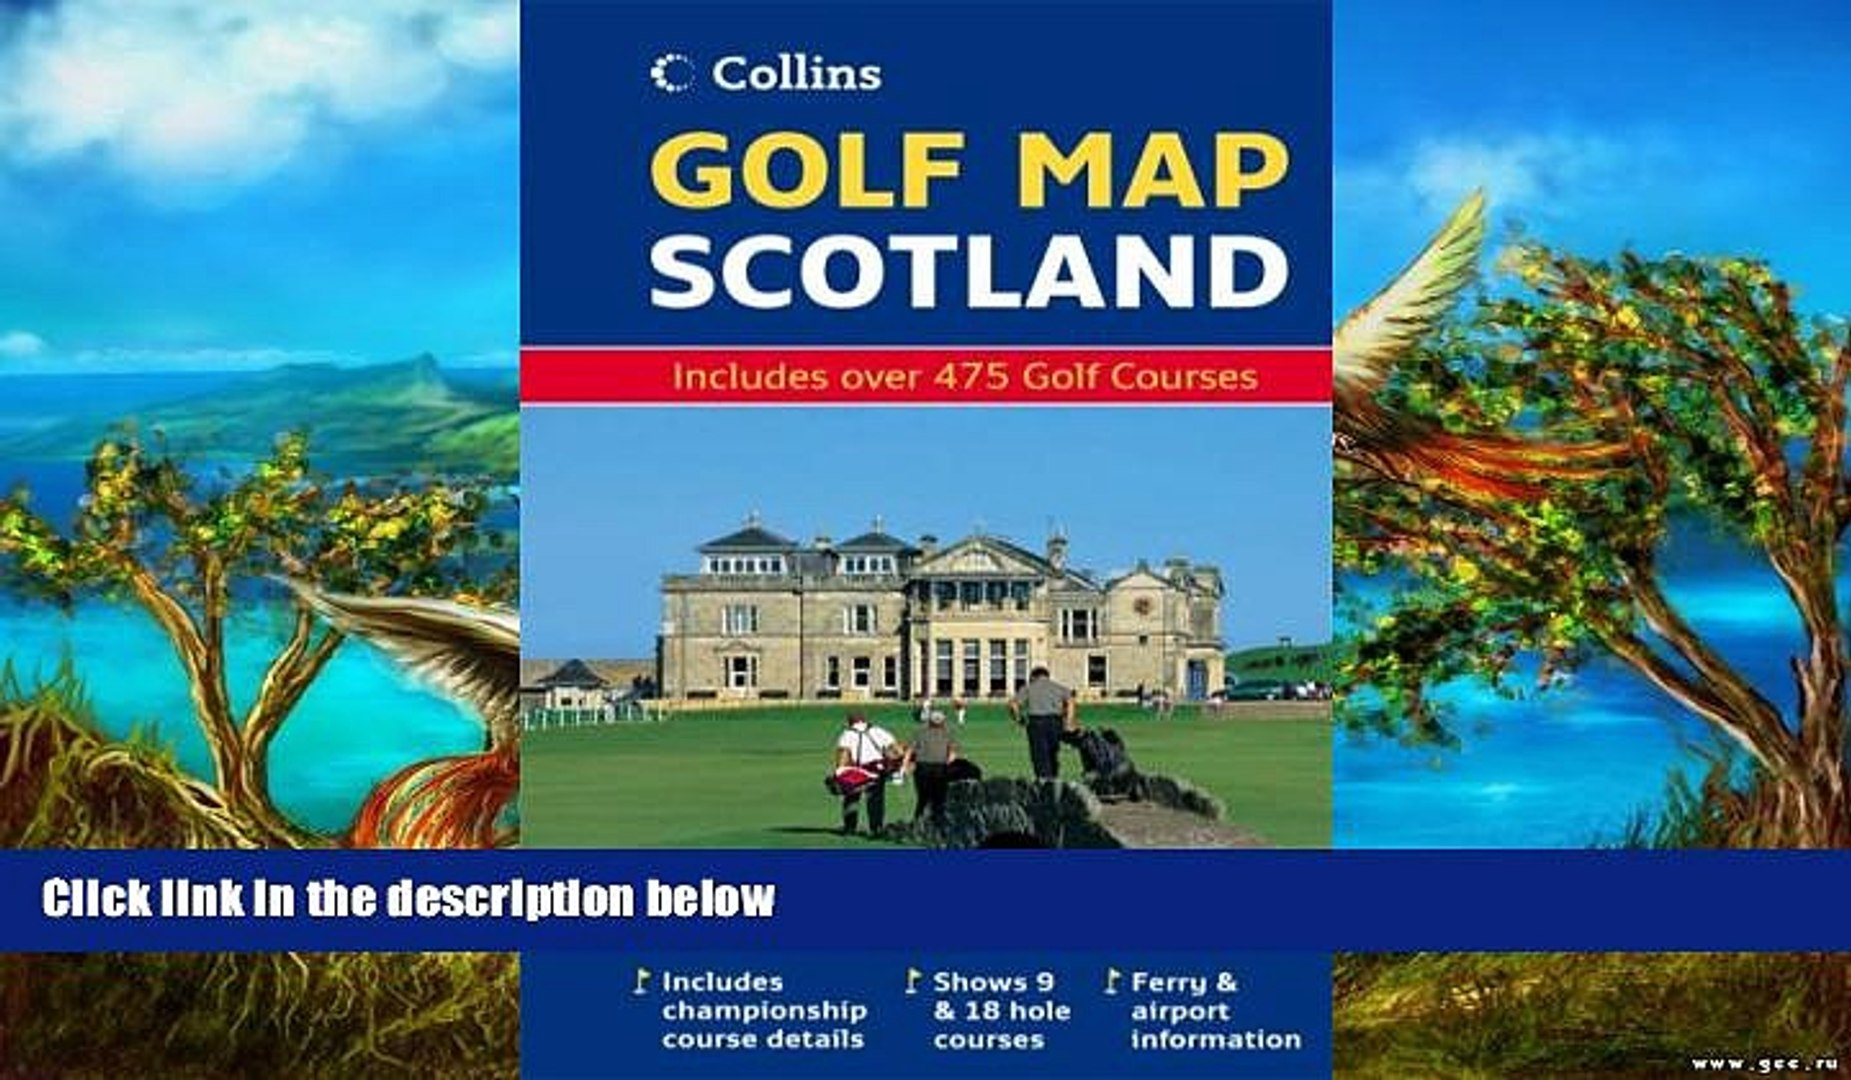 READ NOW Golf Map of Scotland (Map) Premium Ebooks Online Ebooks Golf Map Of Scotland on map of uk golf, map of florida golf, map of golf courses, map of palm springs golf, perth golf, map ireland golf, edinburgh scotland golf, map of maryland golf, map of mexico golf, map of st. lawrence golf, st andrews golf, map of top golf,